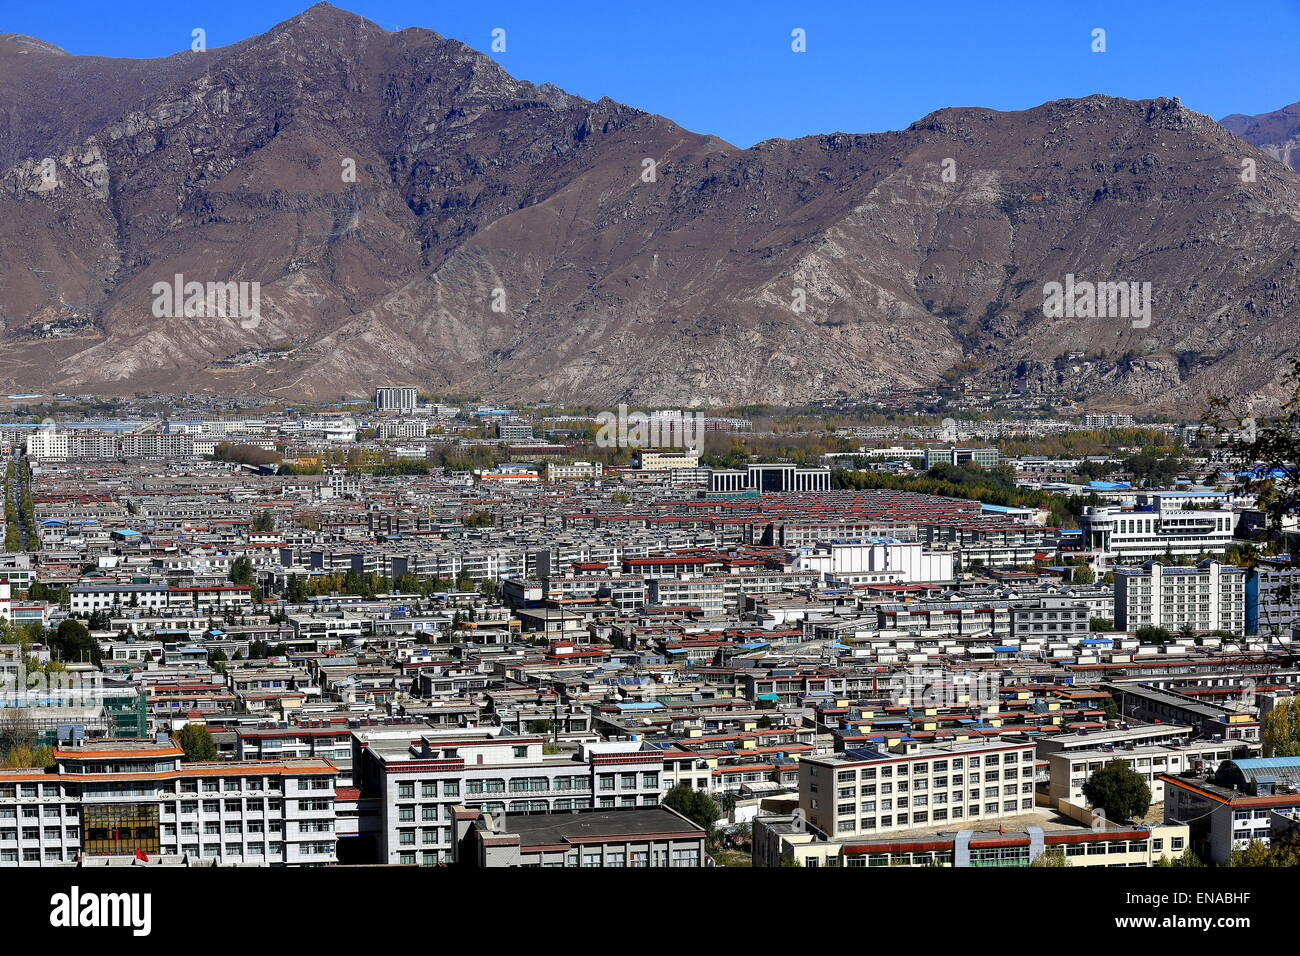 View over Lhasa city to the N.of the Potala palace including the Potrang Karpo and Marpo-White and Red palaces. - Stock Image